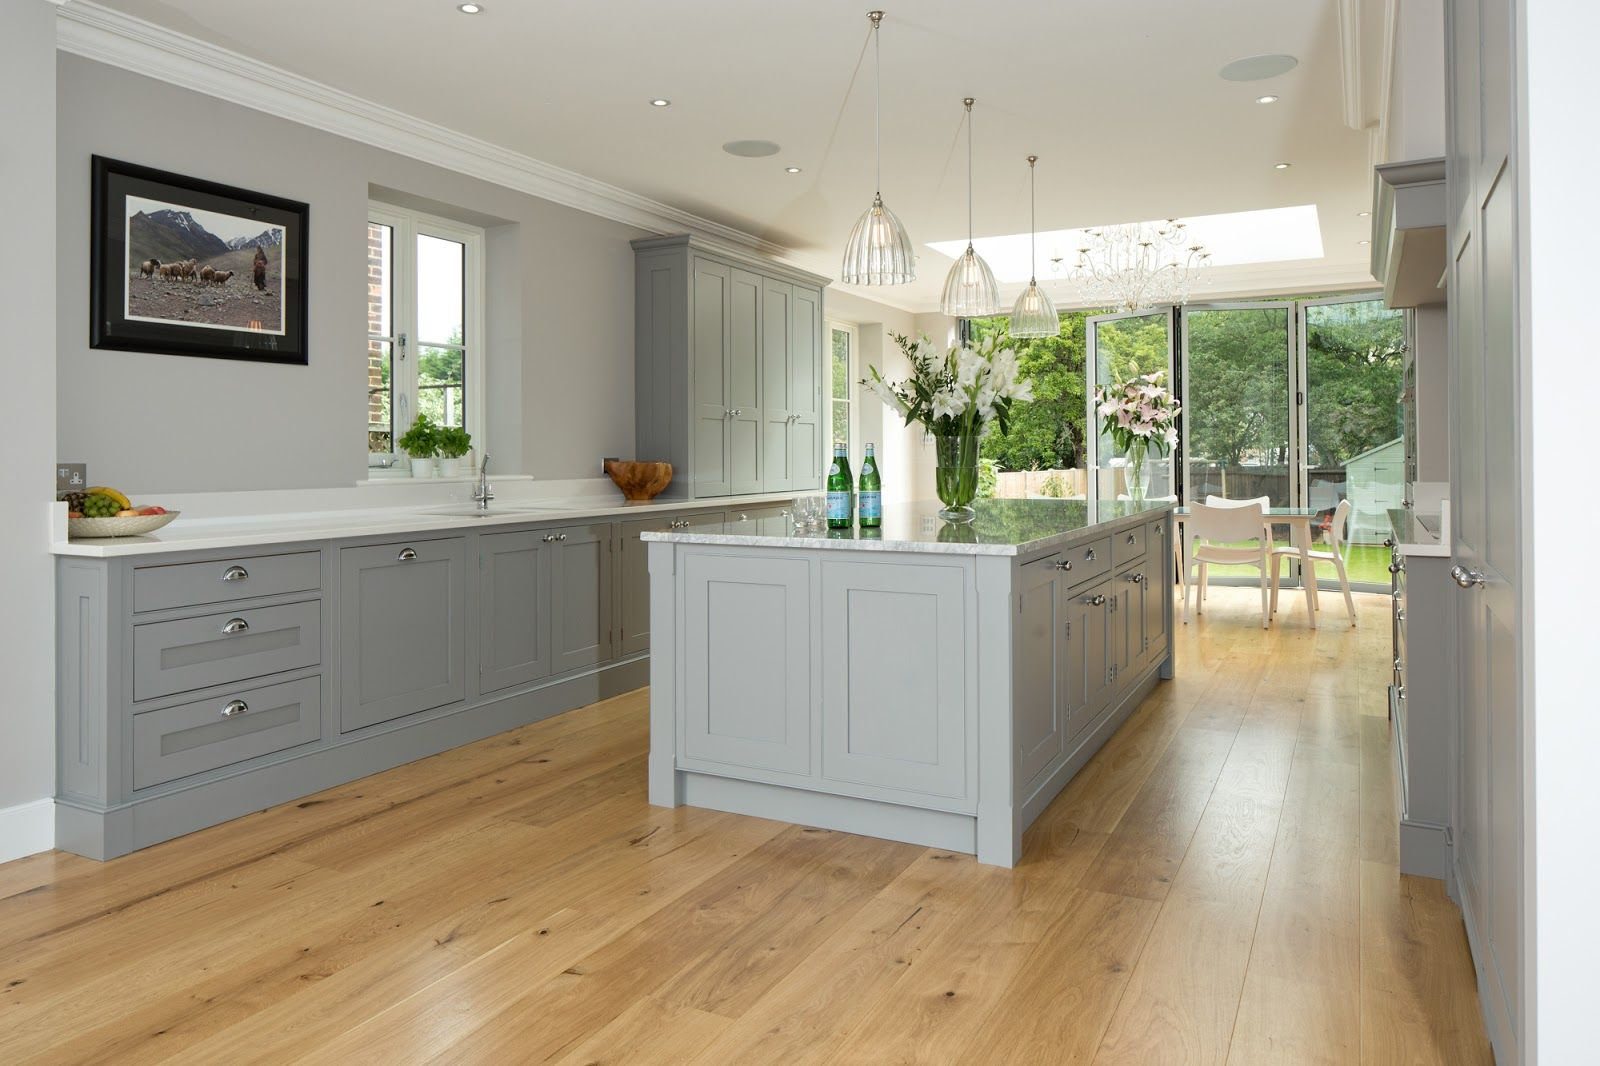 Light Grey Kitchen light grey shaker kitchens - google search | kitchen | pinterest